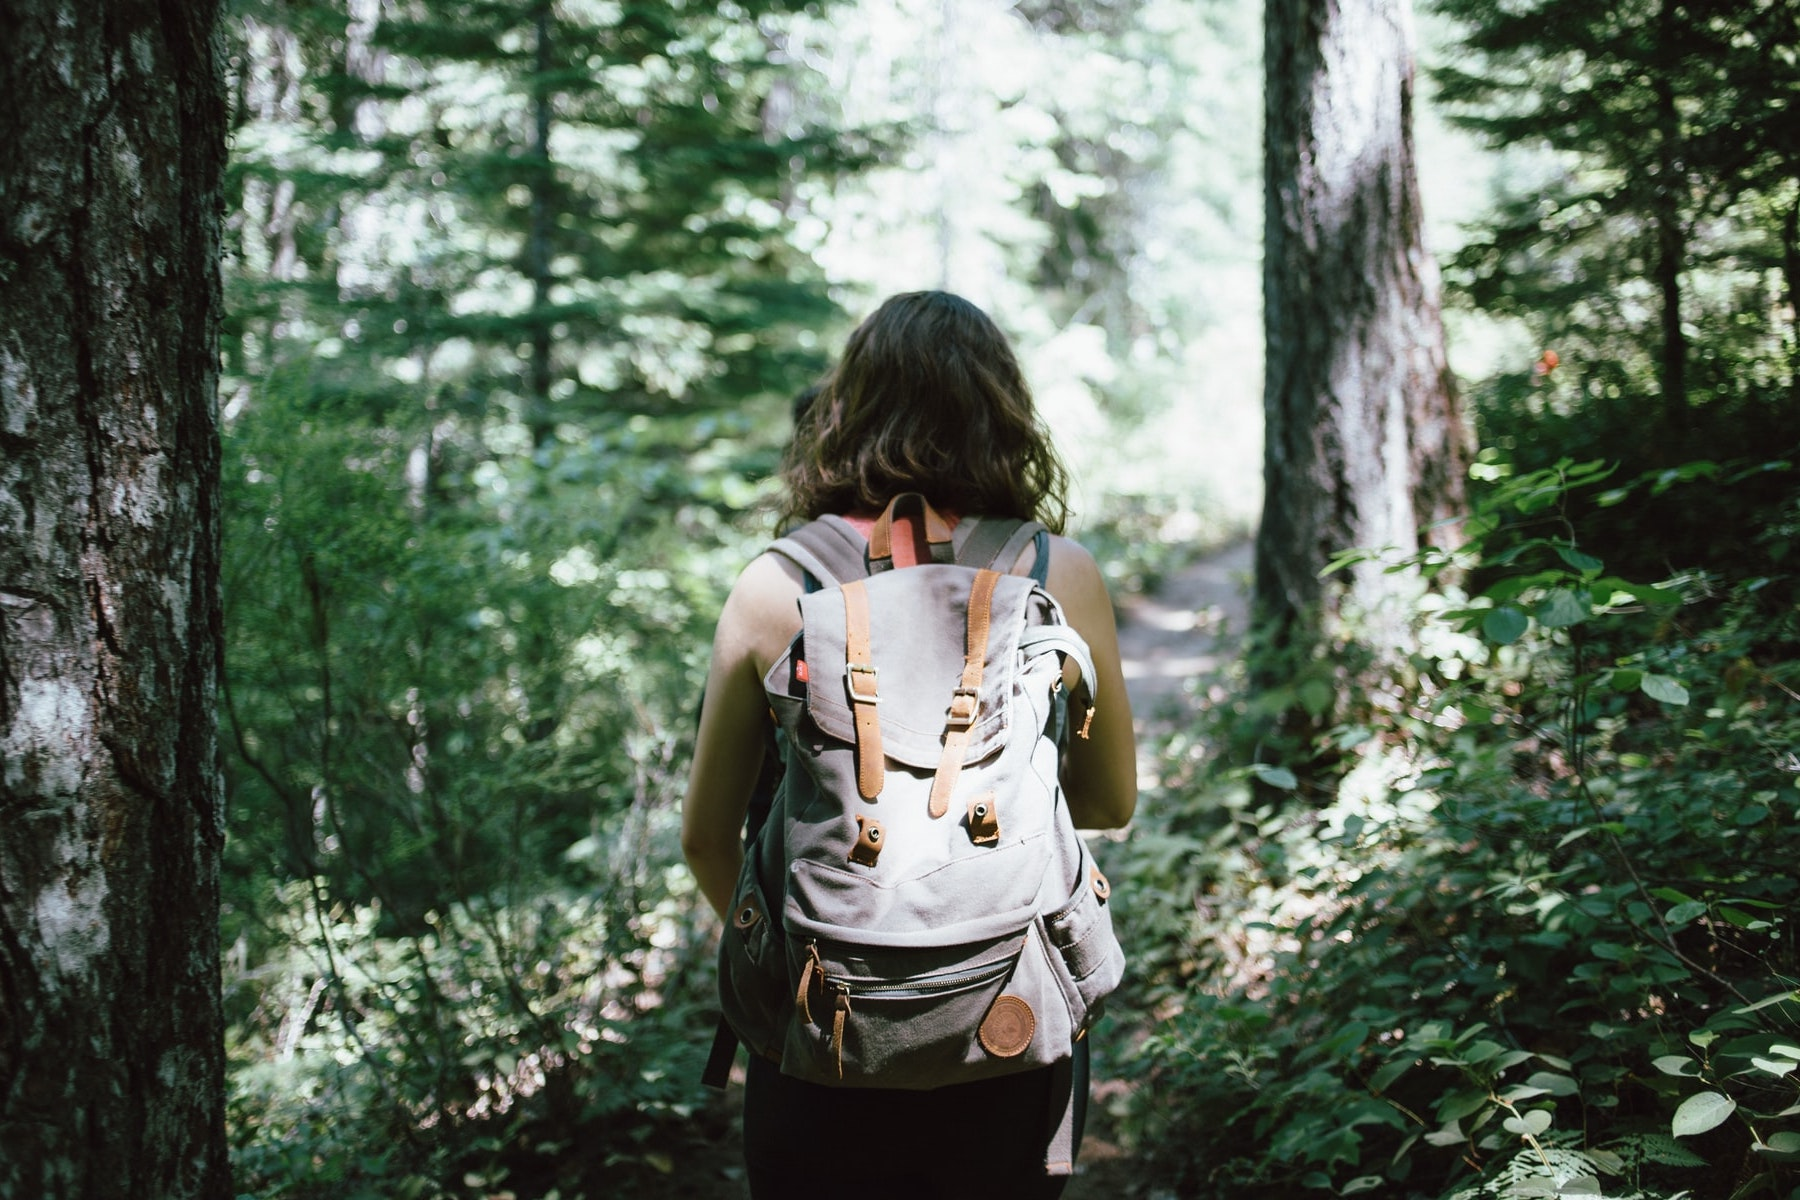 A photo of a woman hiking for an article about hiking trails in Georgia. (Photo by Jake Melara from Unsplash)